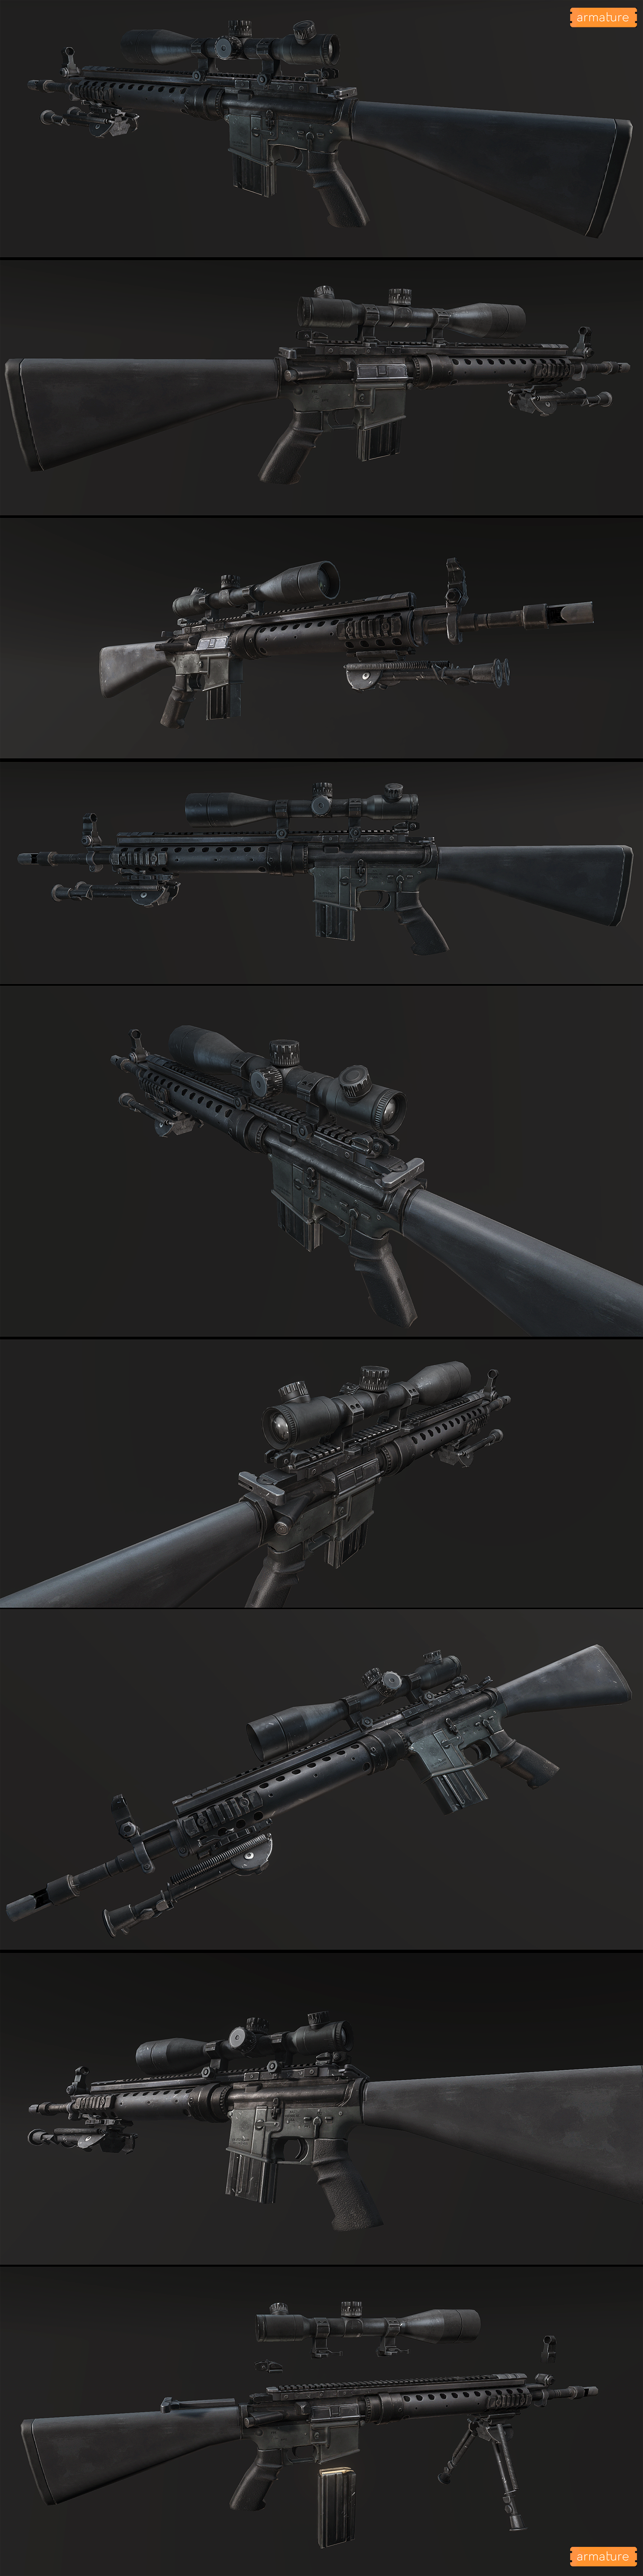 mk12_textured.png